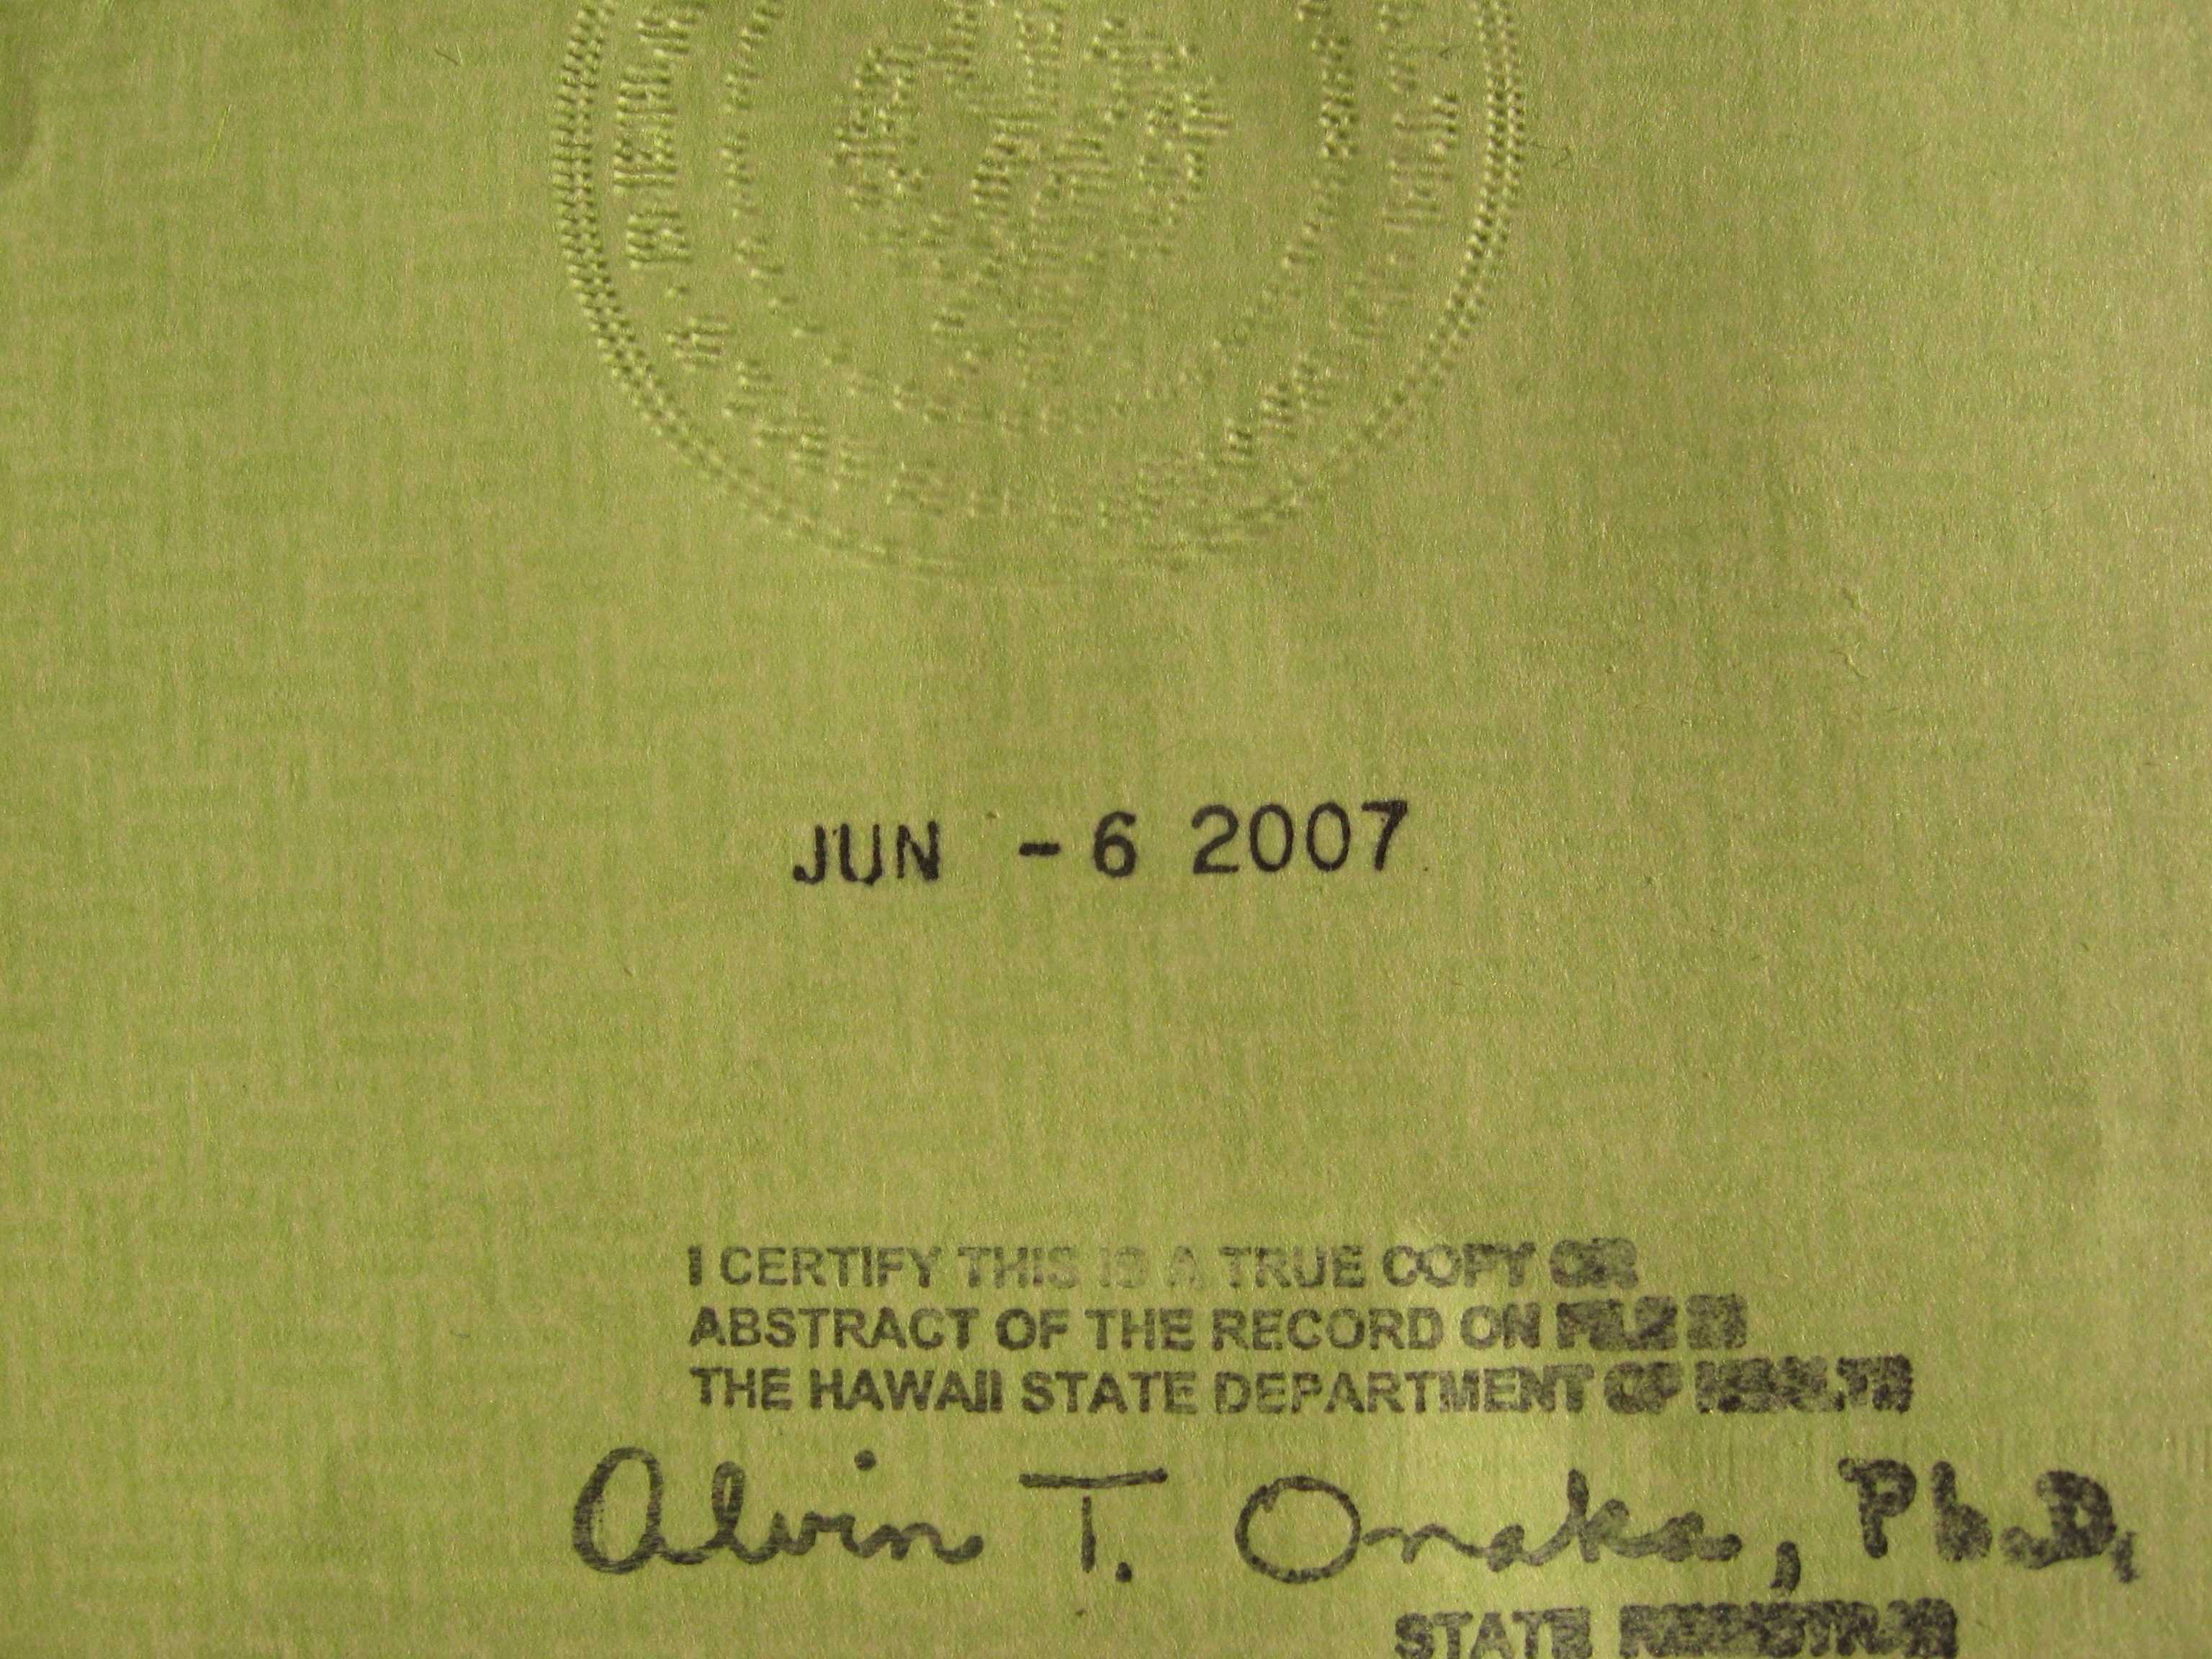 Humor me ats do you see a raised seal on the back of obamas humor me ats do you see a raised seal on the back of obamas short form birth certificate page 1 aiddatafo Images